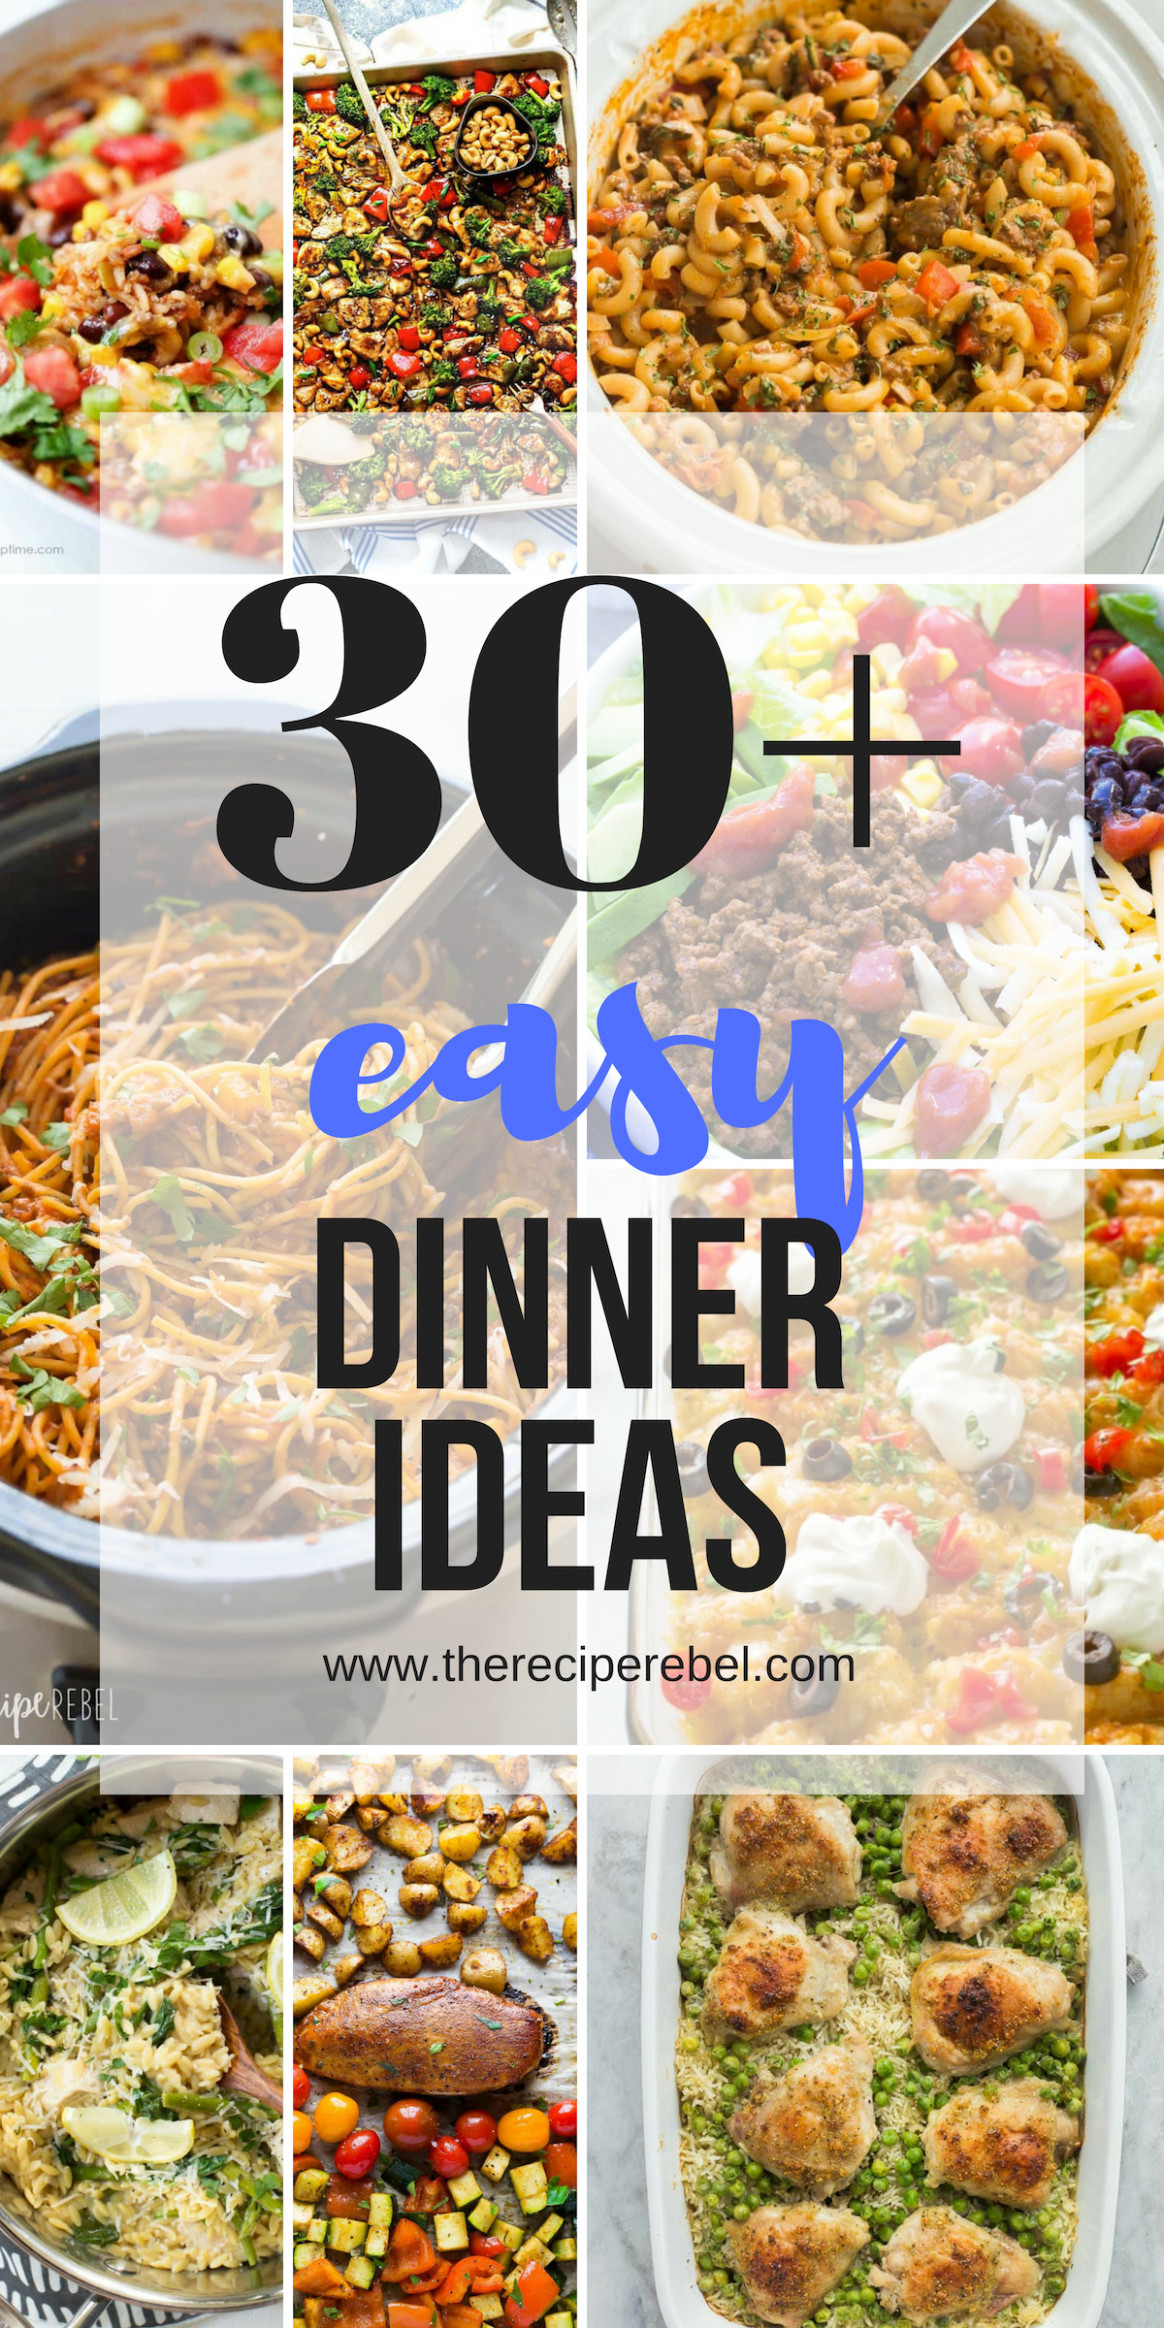 10+ Quick and Easy Dinner Ideas - family friendly! - The ...